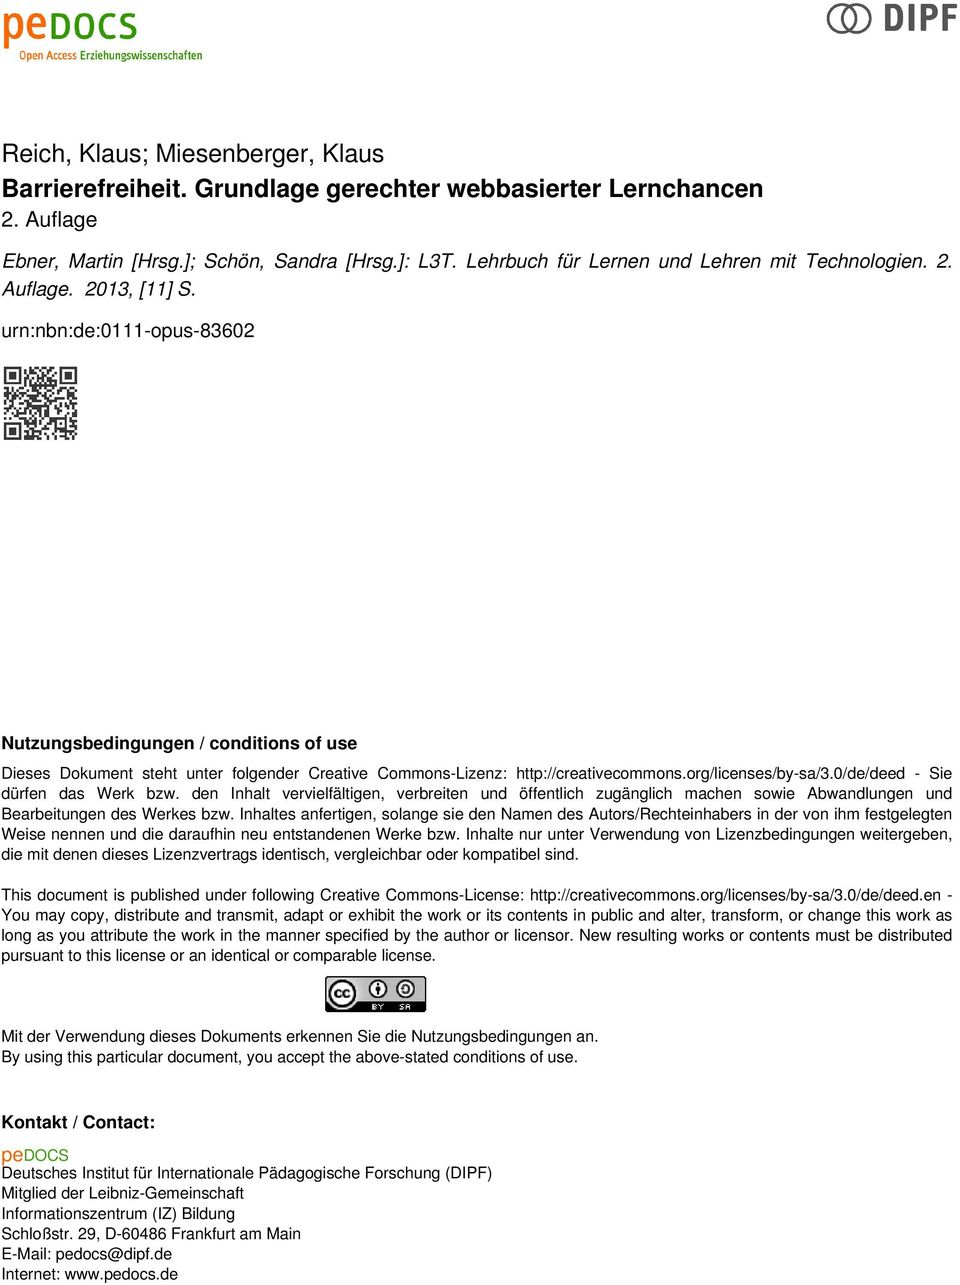 urn:nbn:de:0111-opus-83602 Nutzungsbedingungen / conditions of use Dieses Dokument steht unter folgender Creative Commons-Lizenz: http://creativecommons.org/licenses/by-sa/3.